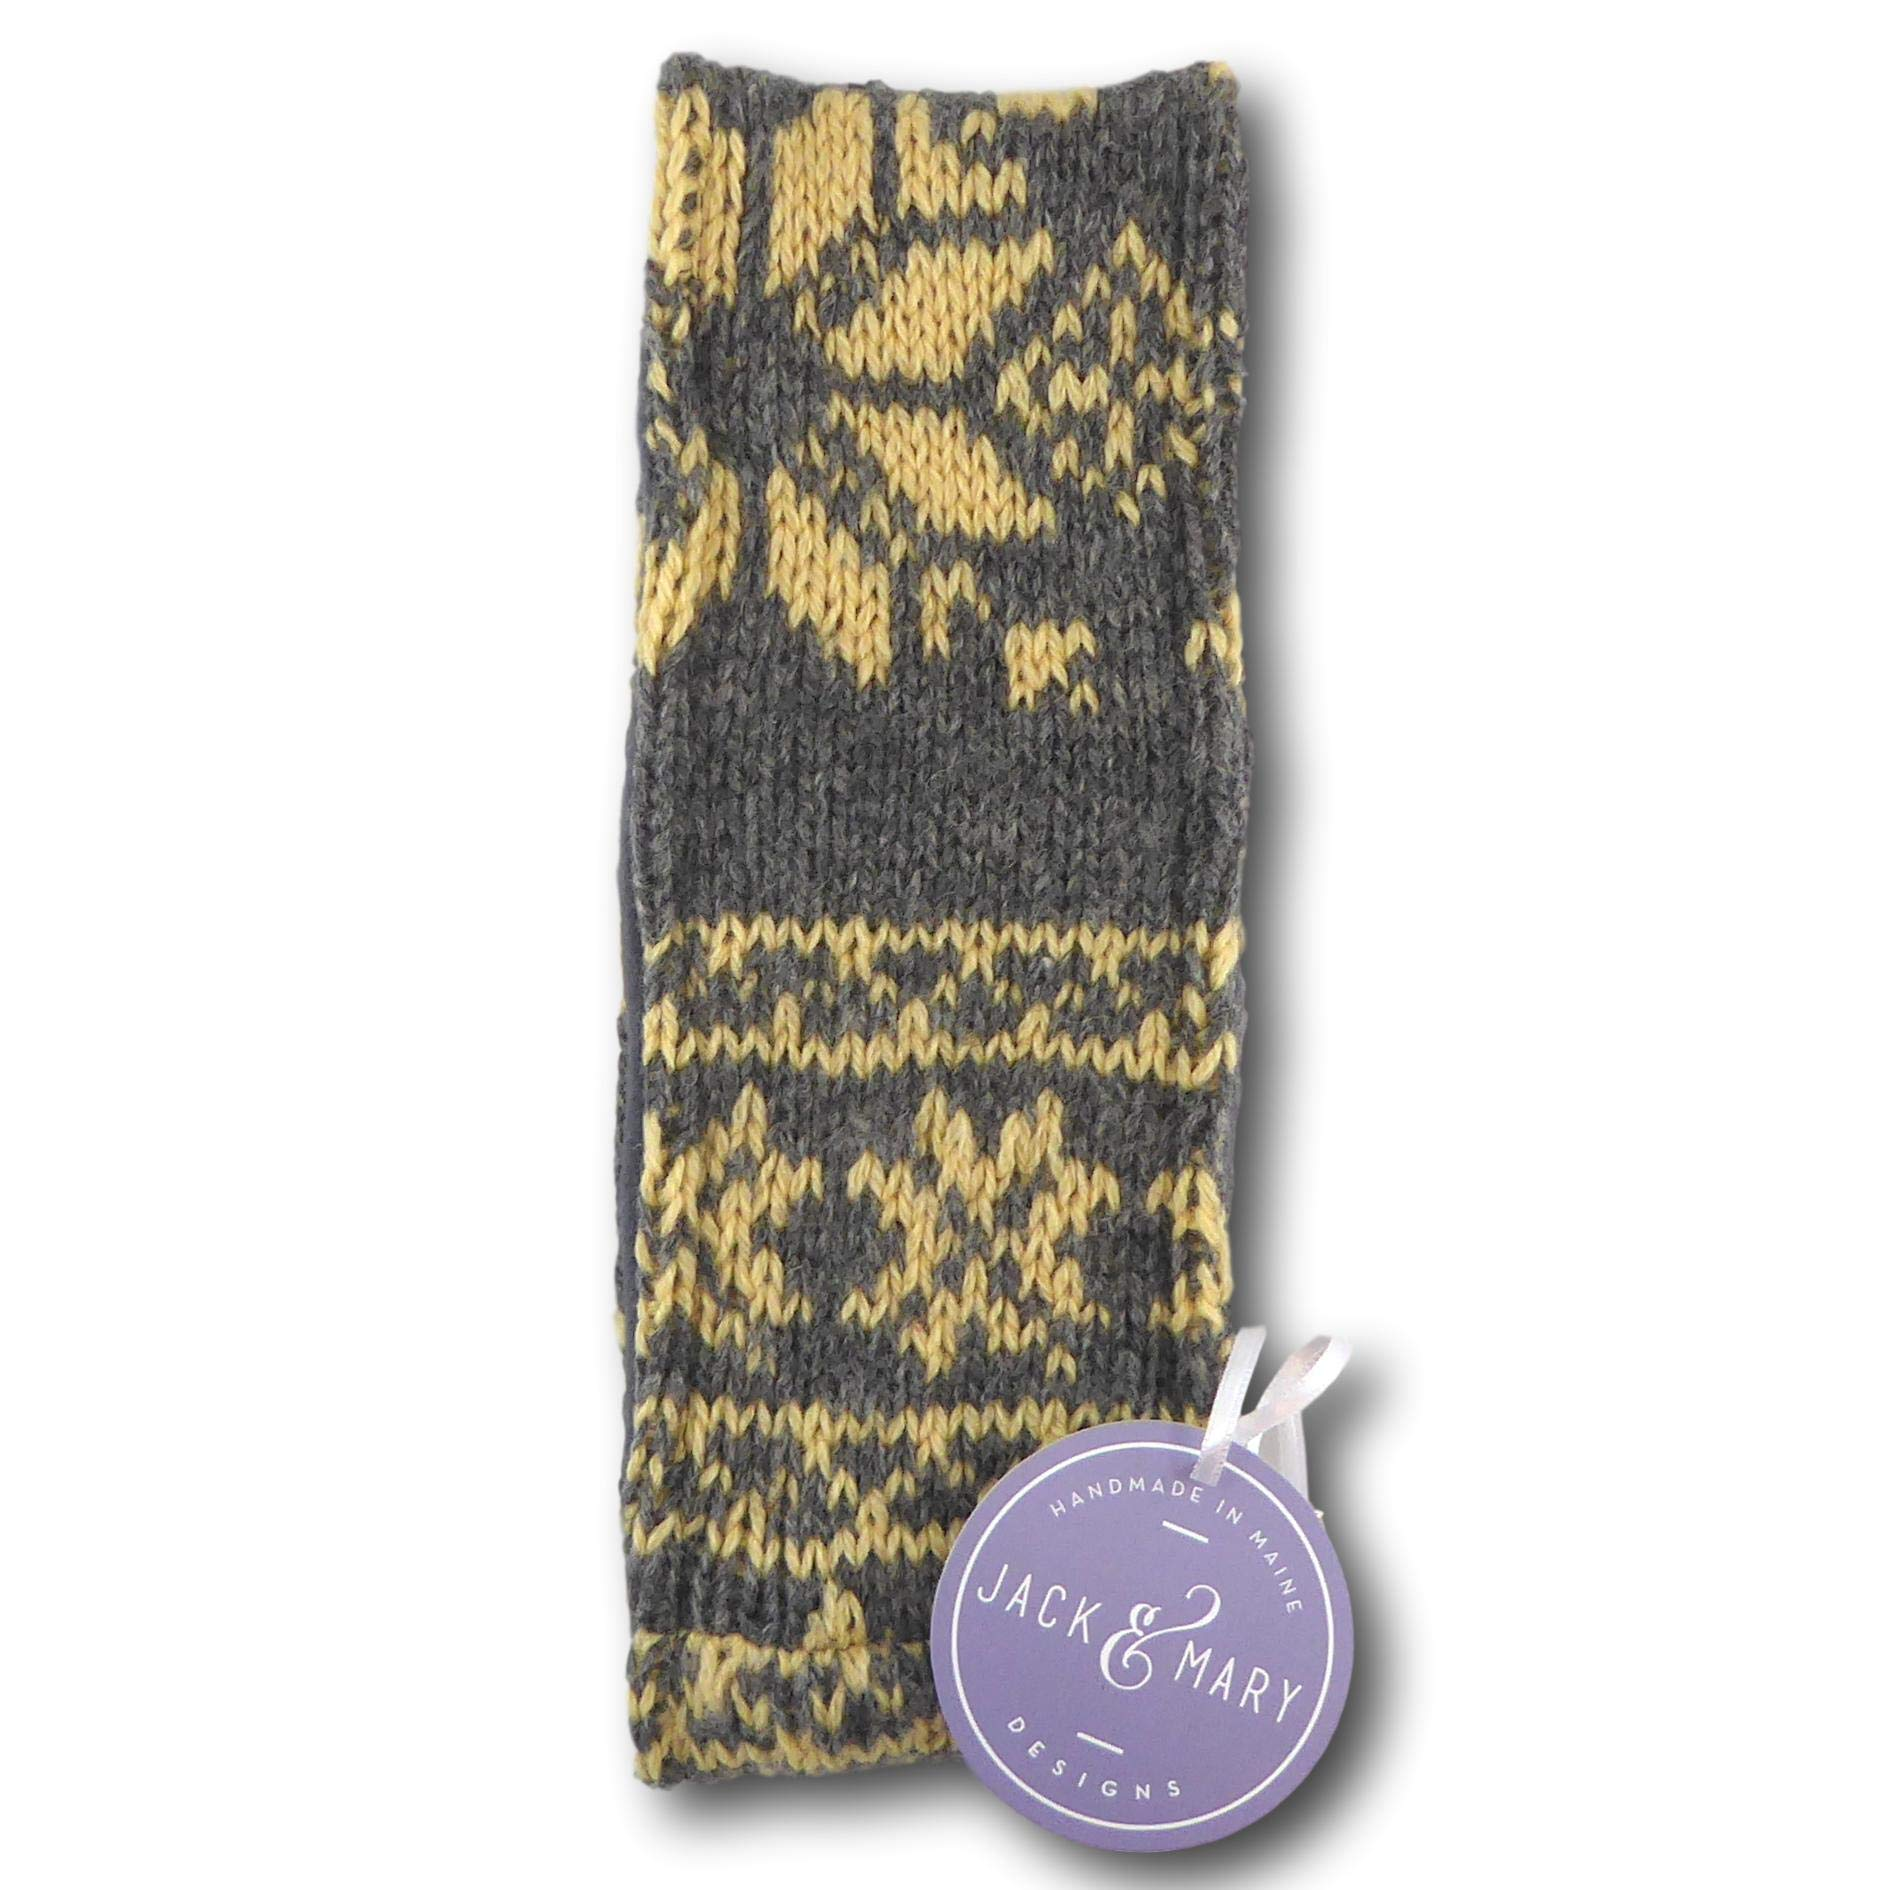 Jack & Mary Designs Fleece Lined Knit Headband - Made from Recycled Wool Sweaters (Gray/Tan)